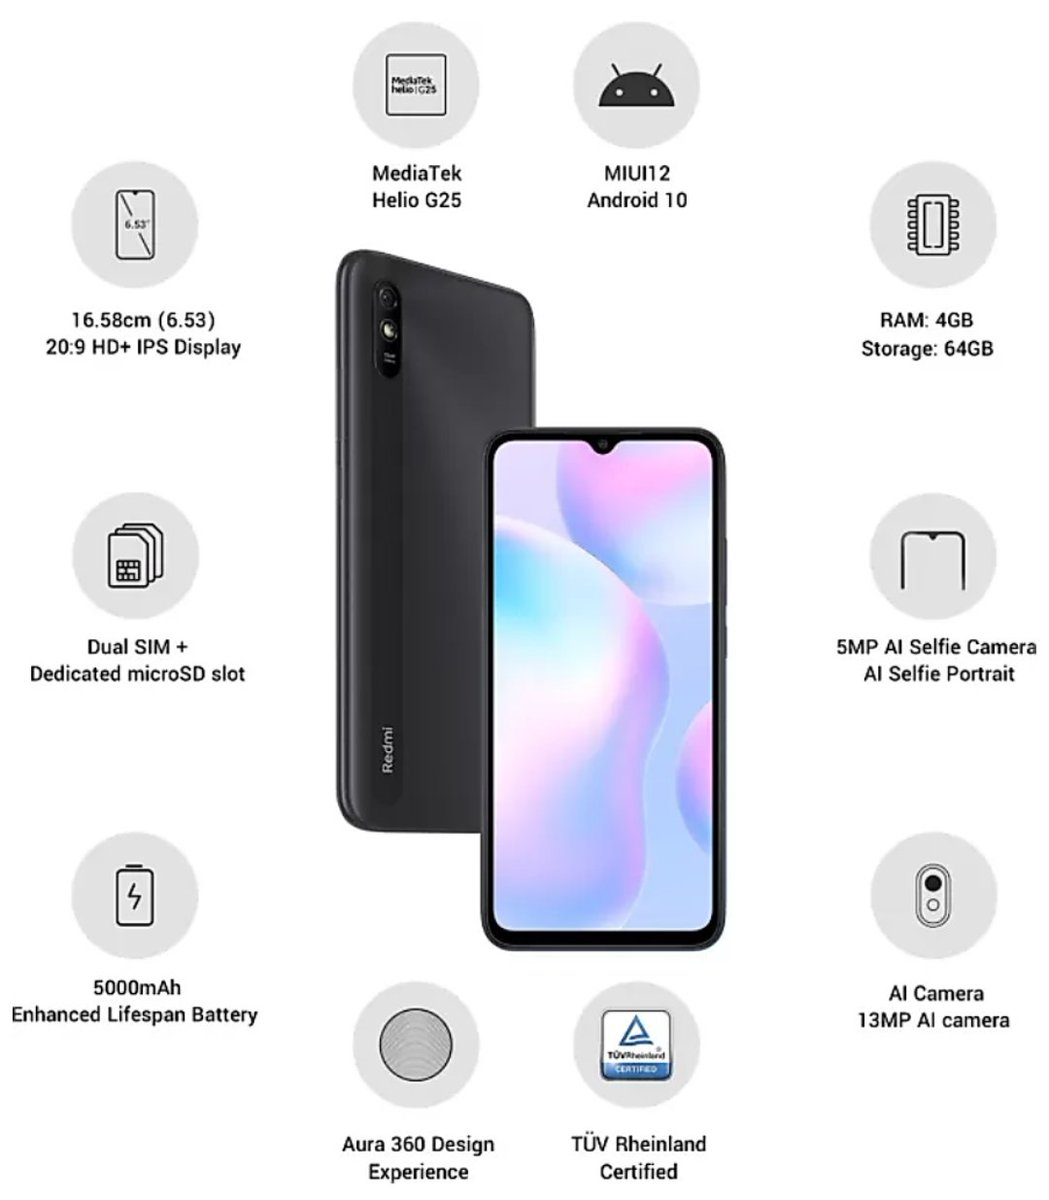 Redmi 9i #BigOnEntertainment | 4GB Version of Redmi 9A  Please watch my video and my opinion in the description 😞😞 https://t.co/MsRnd9XKgw